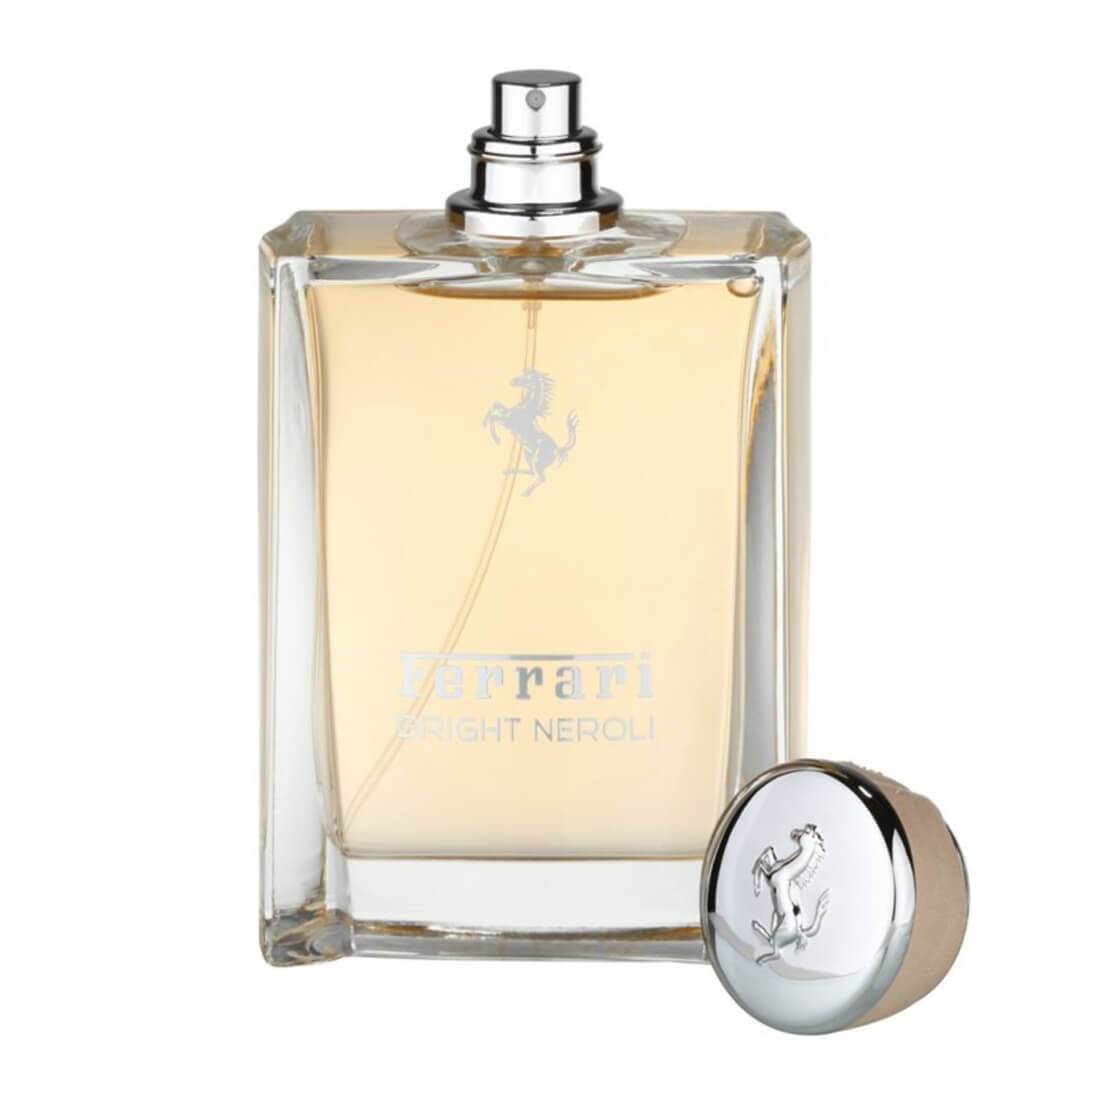 Ferrari Bright Neroli Eau De Toilette For Unisex 100ml